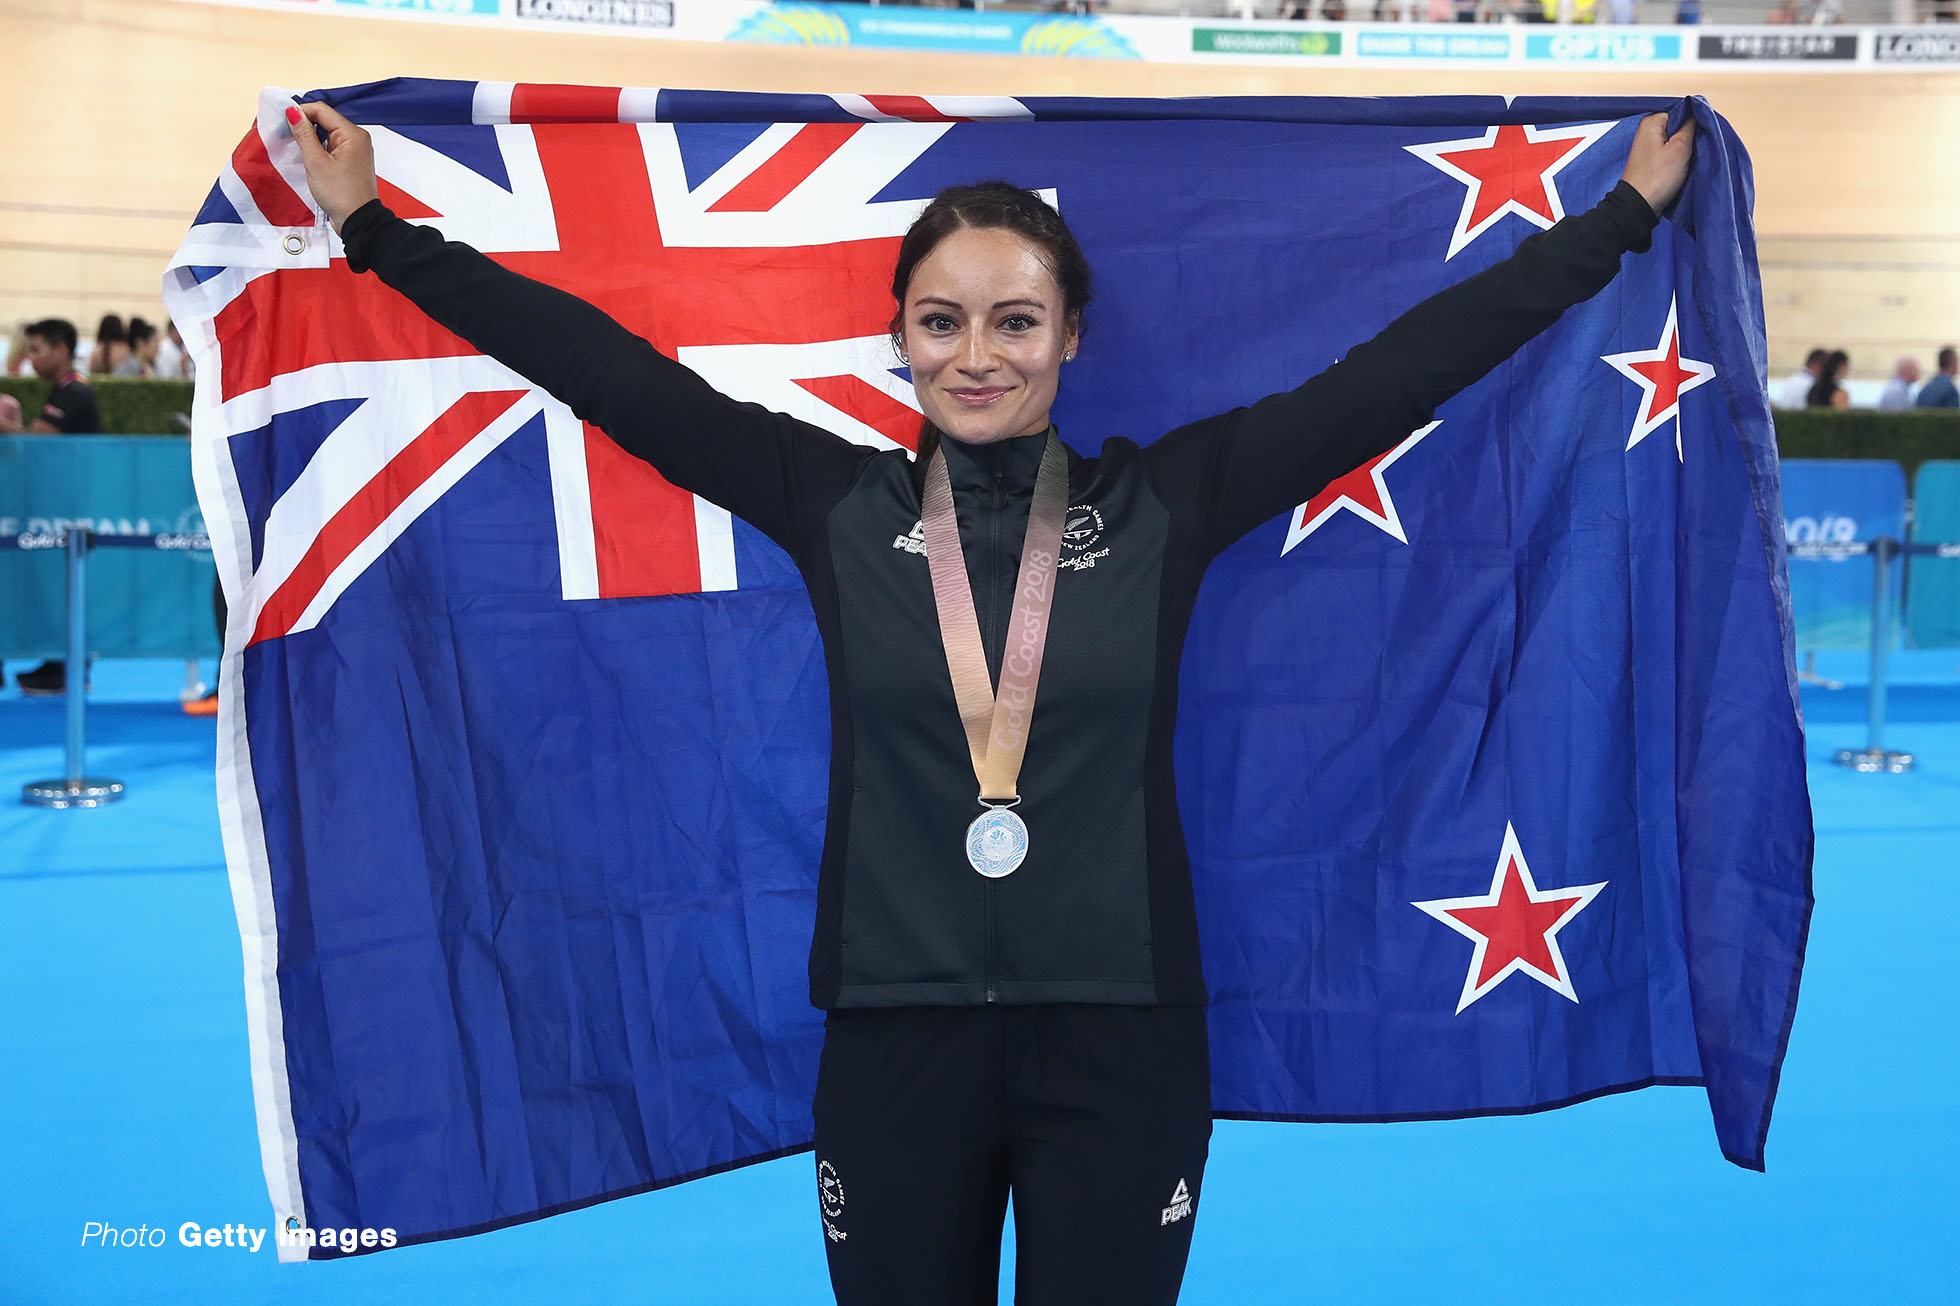 BRISBANE, AUSTRALIA - APRIL 06: Silver medalist Natasha Hansen of New Zealand celebrates during the medal ceremony for the Women's Sprint final on day two of the Gold Coast 2018 Commonwealth Games at Anna Meares Velodrome on April 6, 2018 in Brisbane, Australia. (Photo by Scott Barbour/Getty Images)